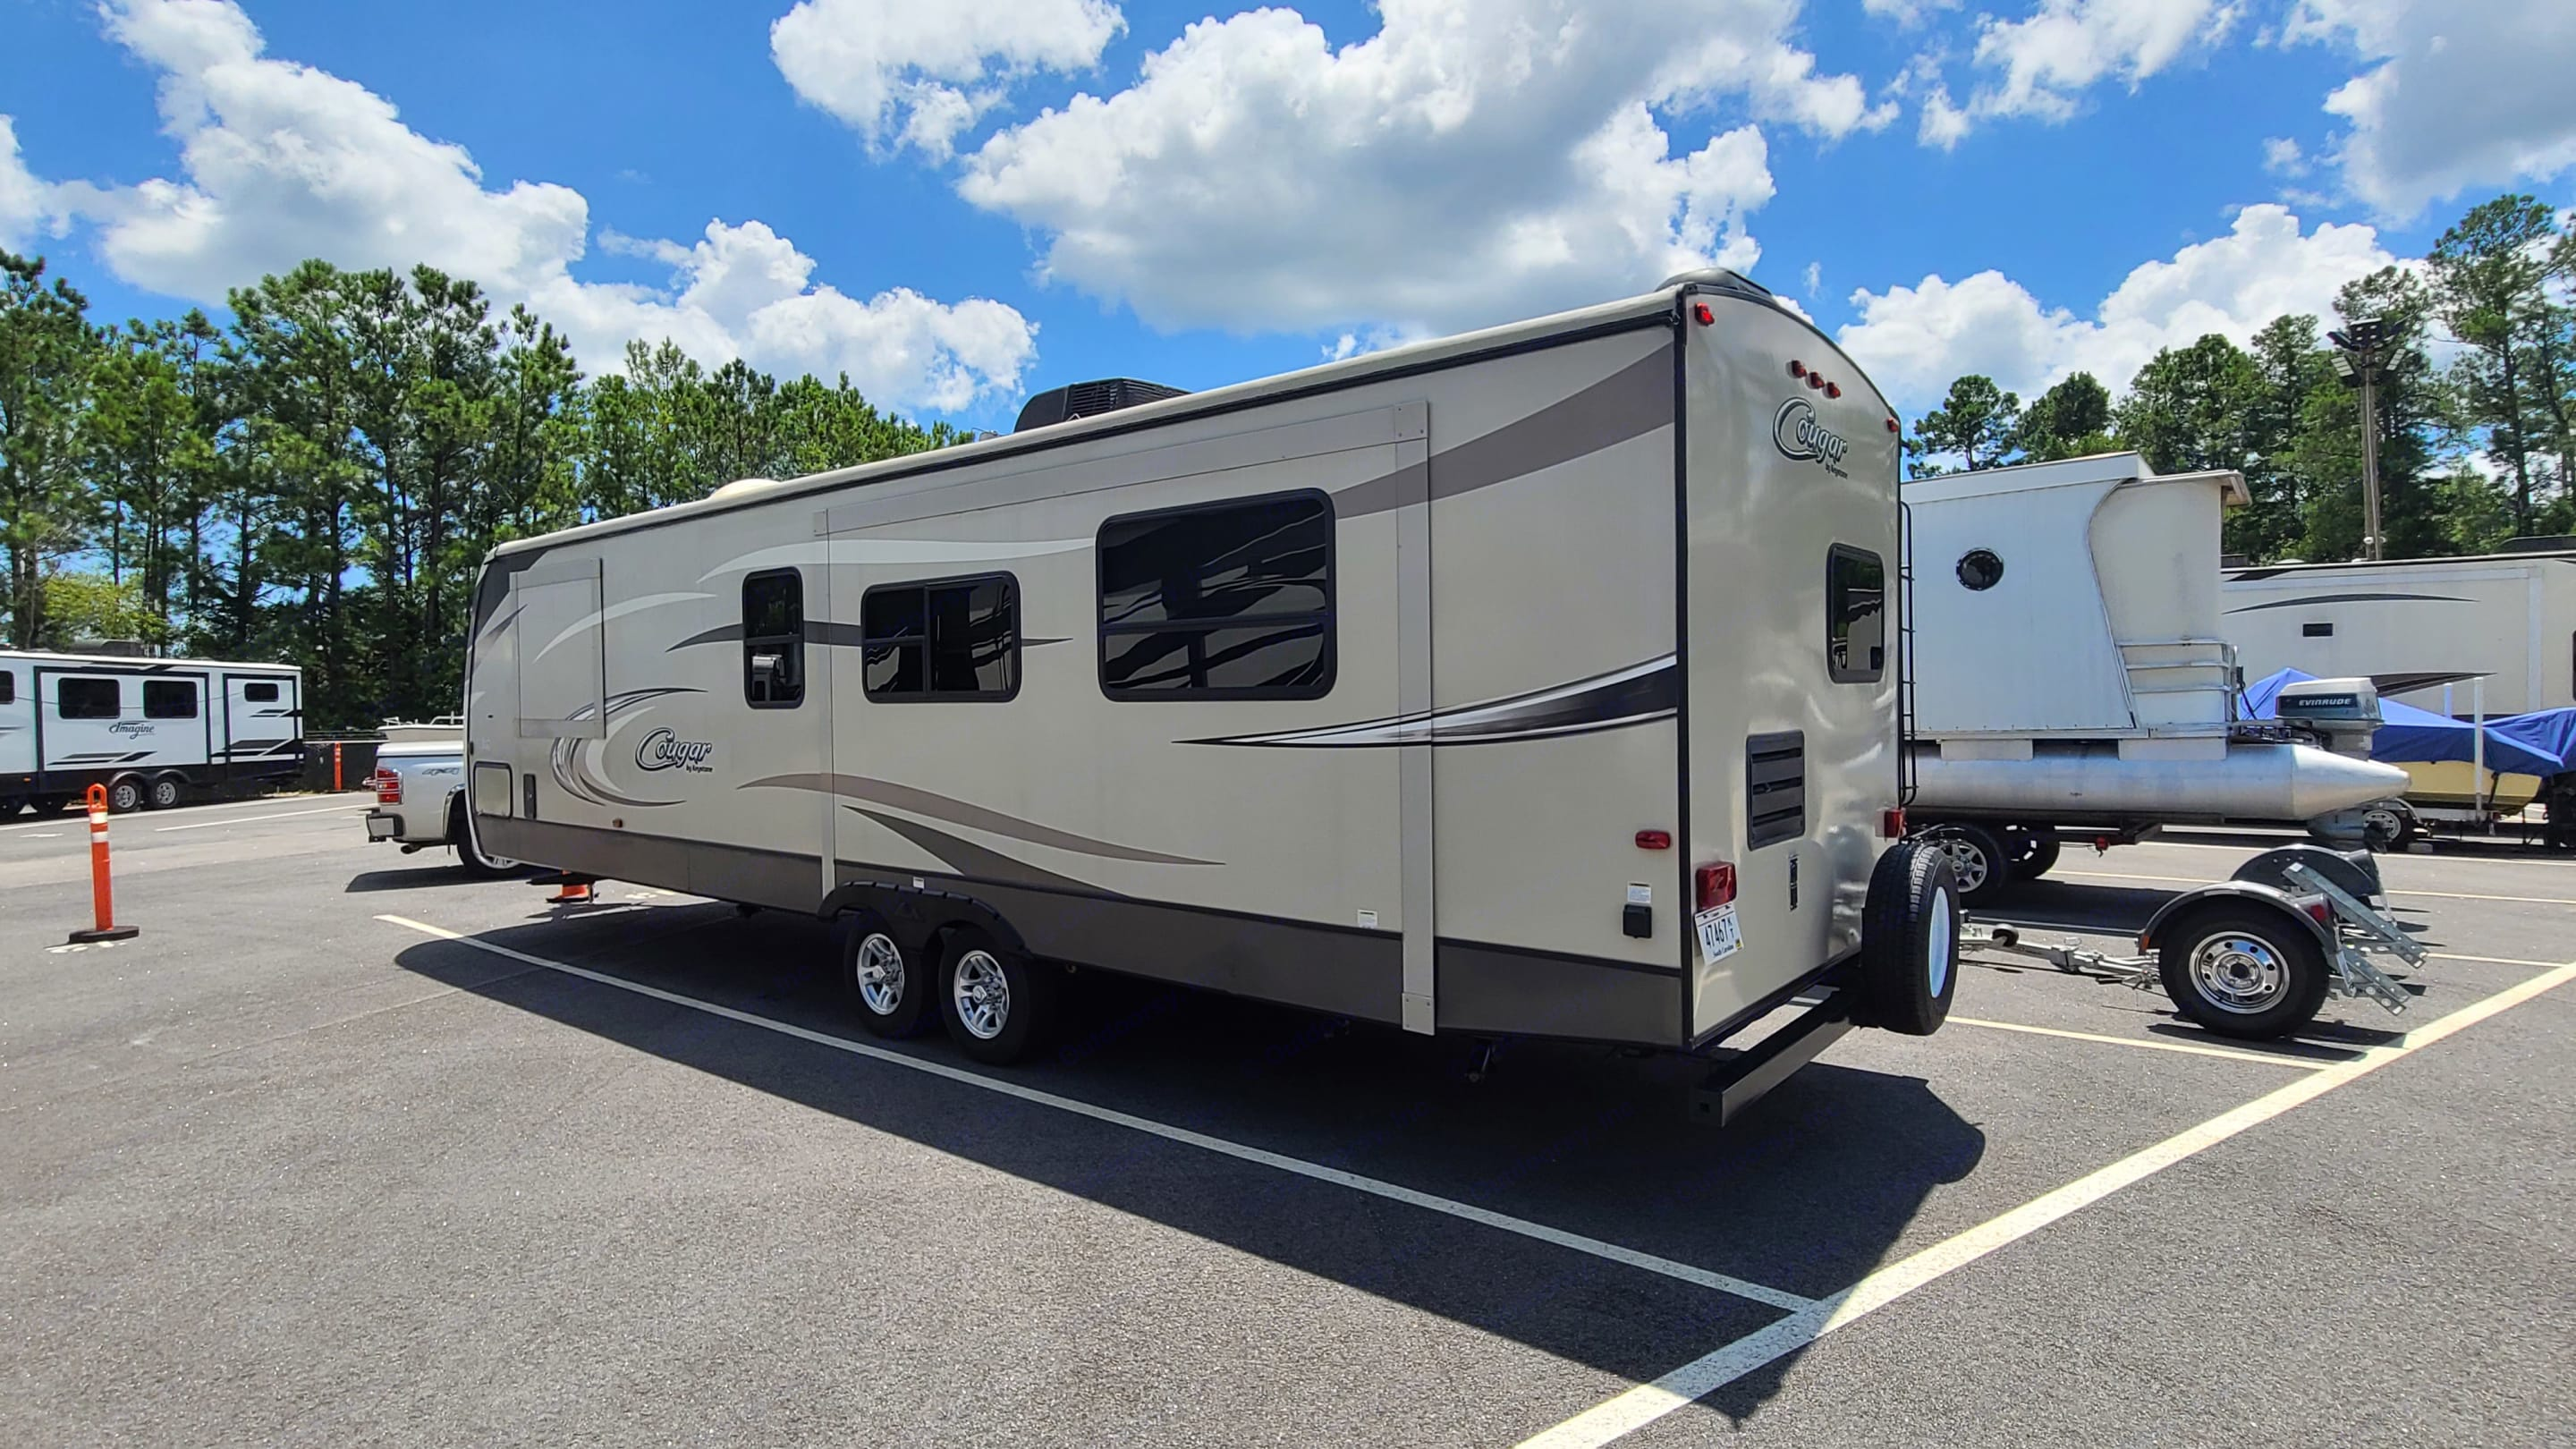 2 Slide outs, Living Room and Main Bedroom. Keystone Cougar 2017